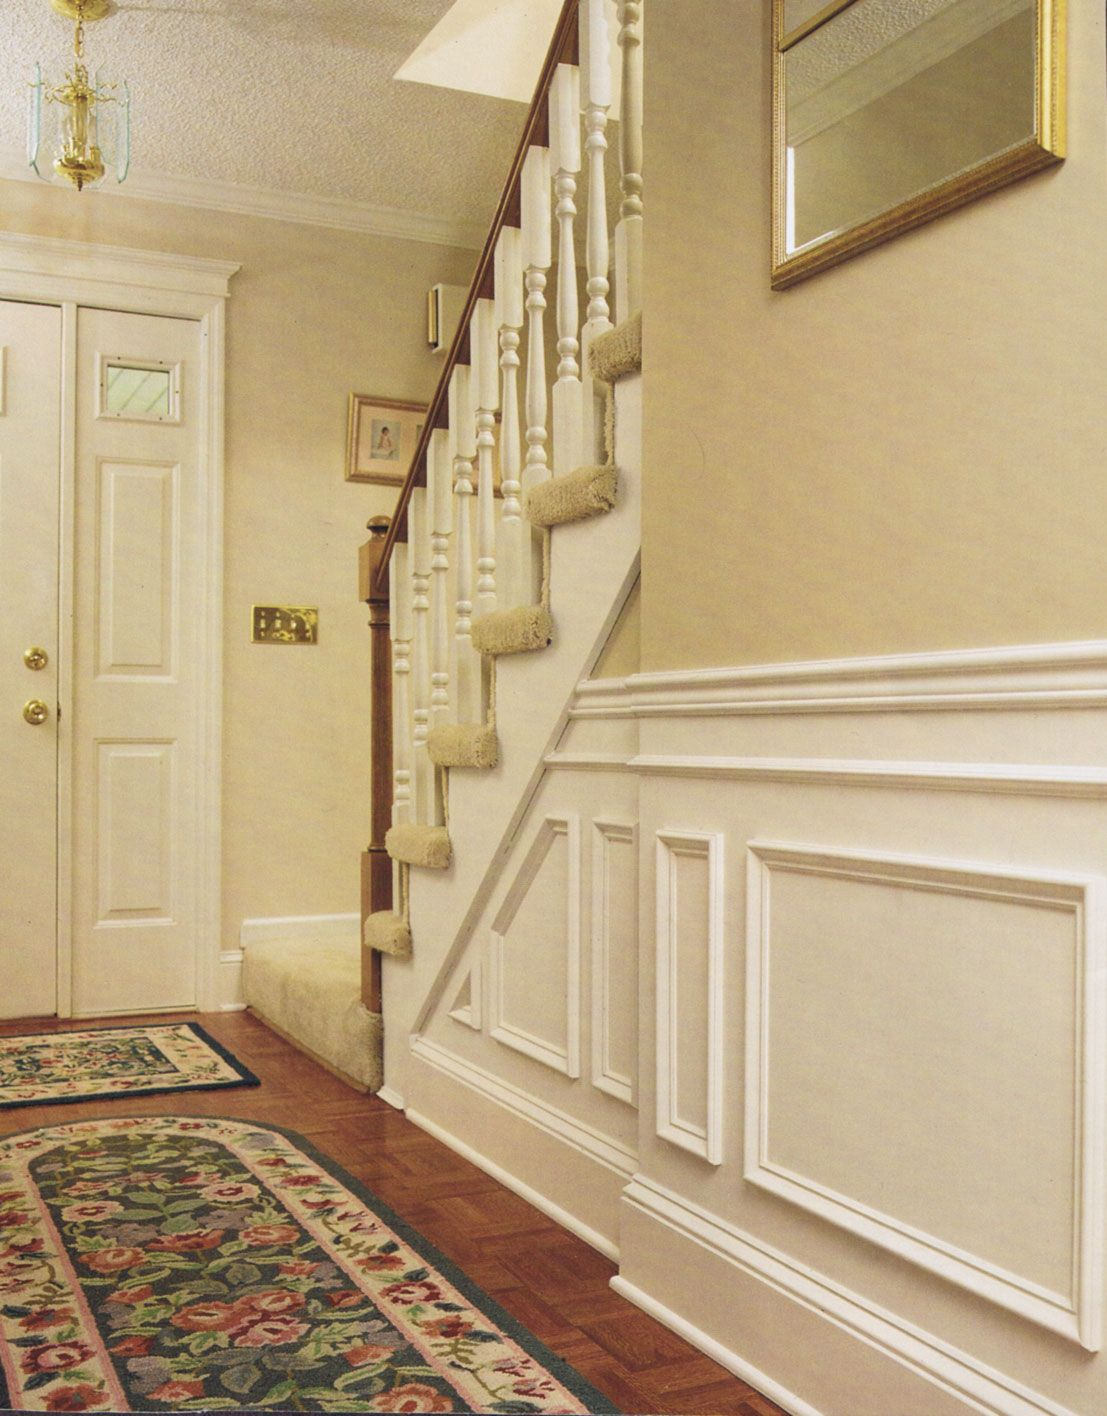 Wainscoting Design Ideas saveemail Decoration Ideas Cambridge Ceilings Products Wainscoting